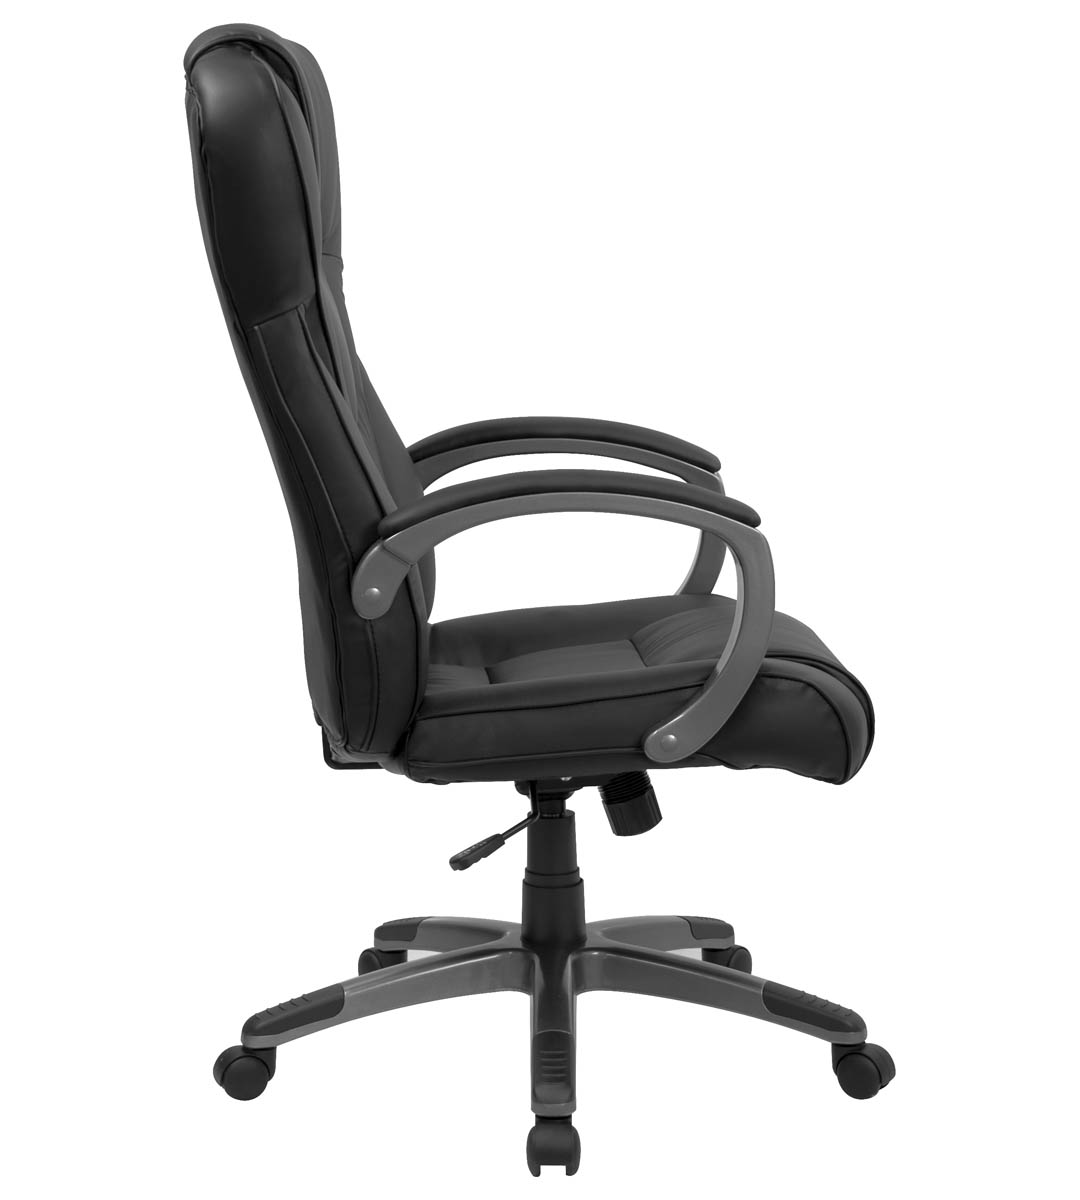 Formfit Extra Plush Executive Black Leather Office Chair